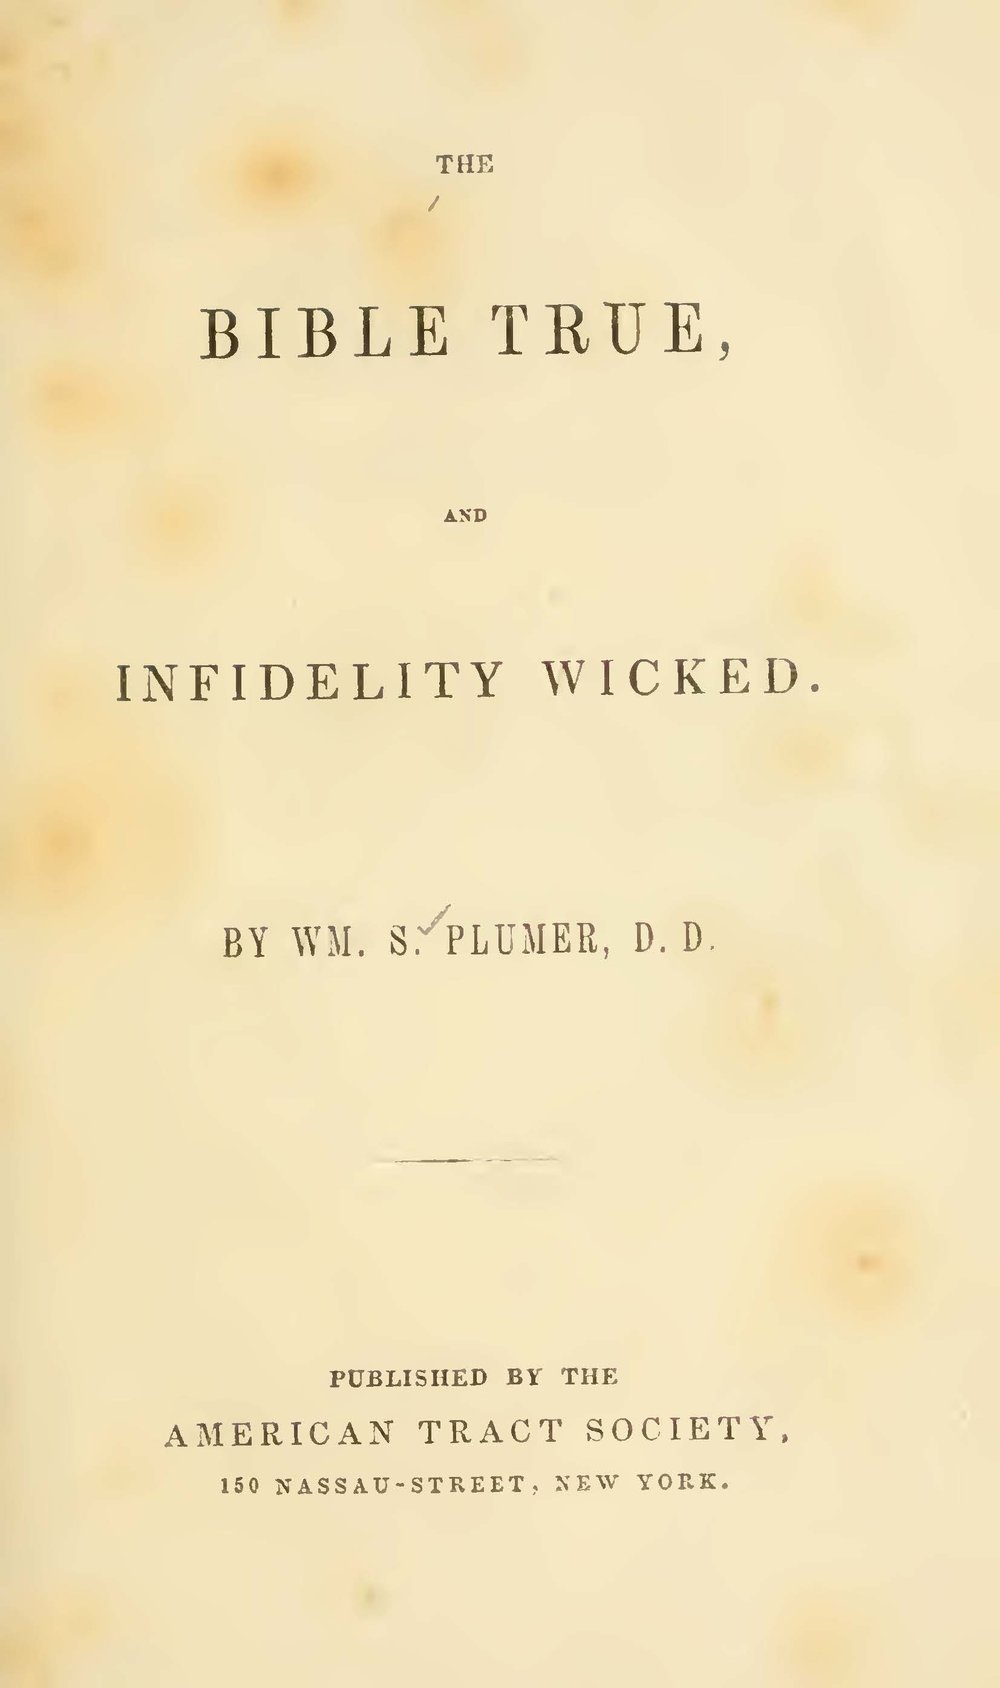 Plumer, William Swan, The Bible True, and Infidelity Wicked Title Page.jpg